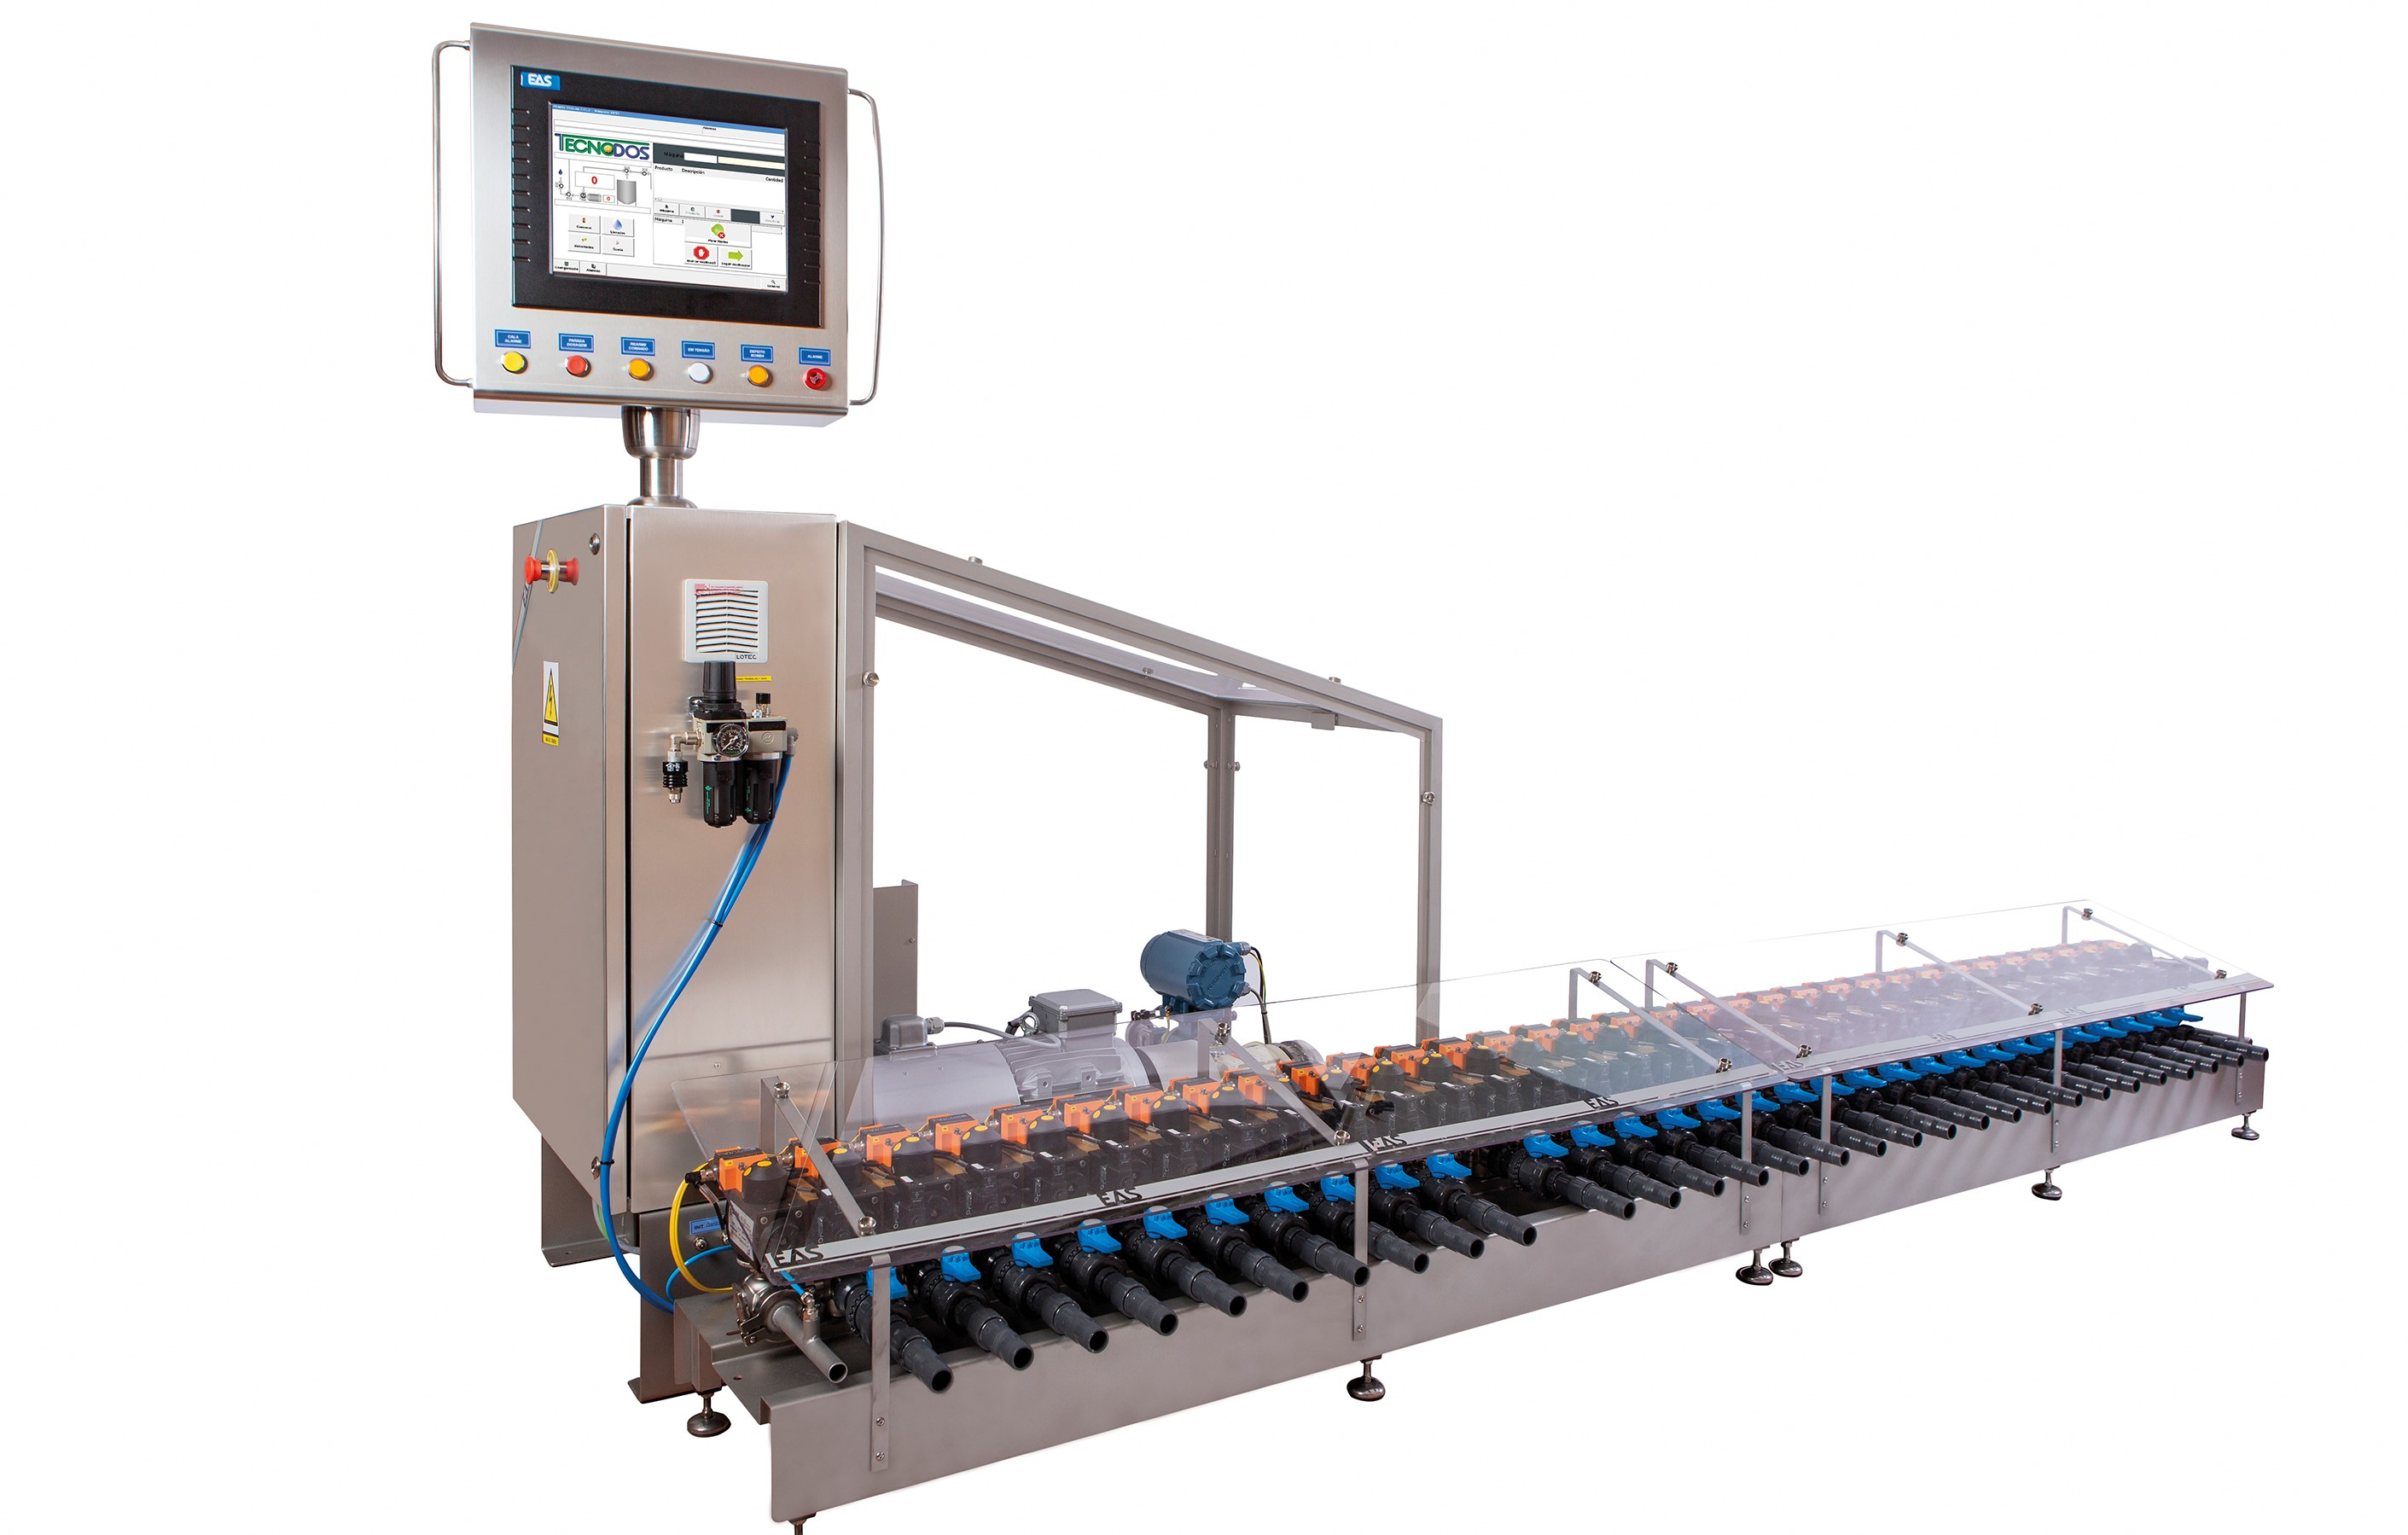 EAS will Exhibit Its Latest Technologies Developed for Textile Dyeing Industry